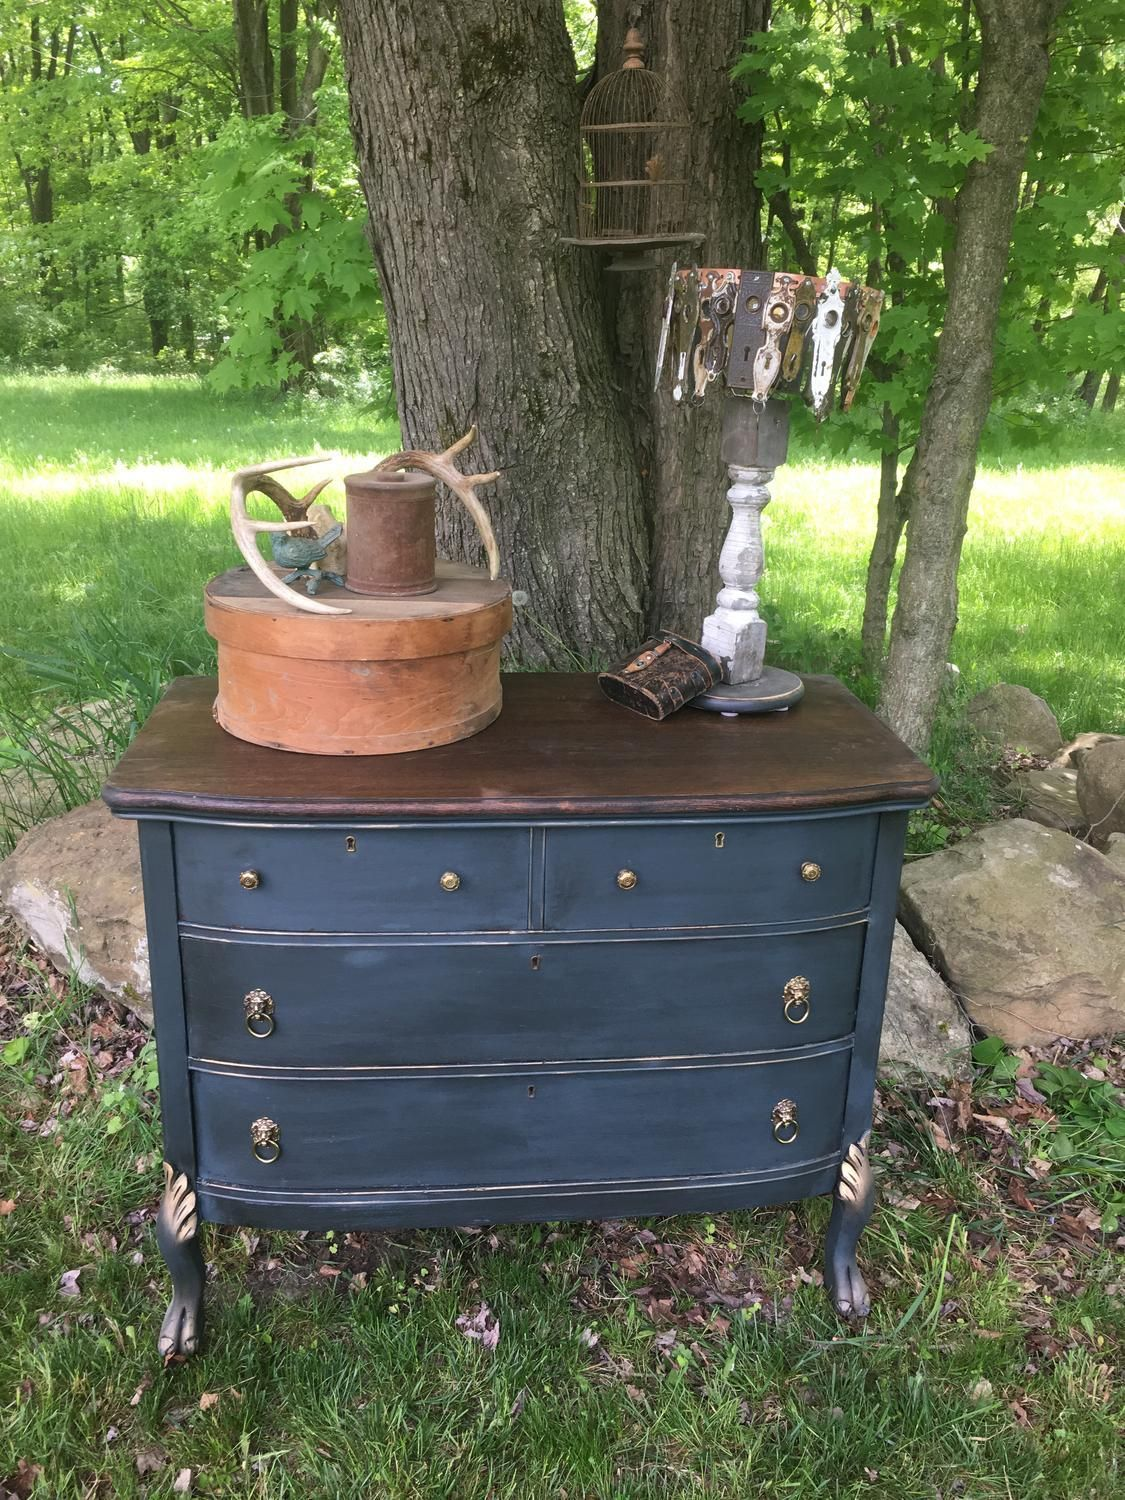 for sale navy blue antique oak dresser regal rich dark annie sloan mix navy blue with gold. Black Bedroom Furniture Sets. Home Design Ideas